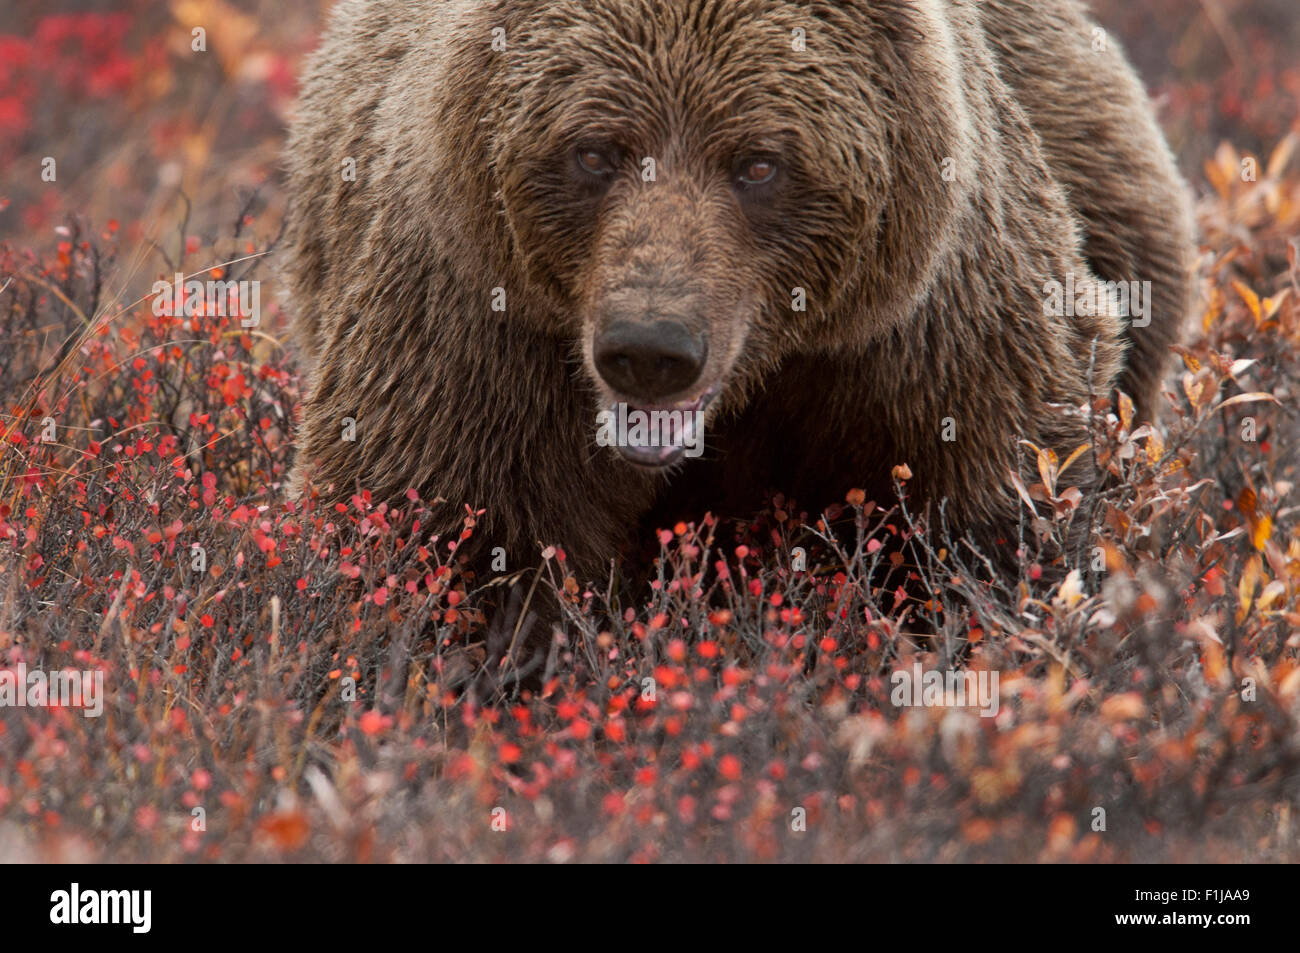 Grizzly bear (Ursus arctos) sow in autumn tundra of dwarf birch, willow, blueberry and soap berry, Denali National - Stock Image